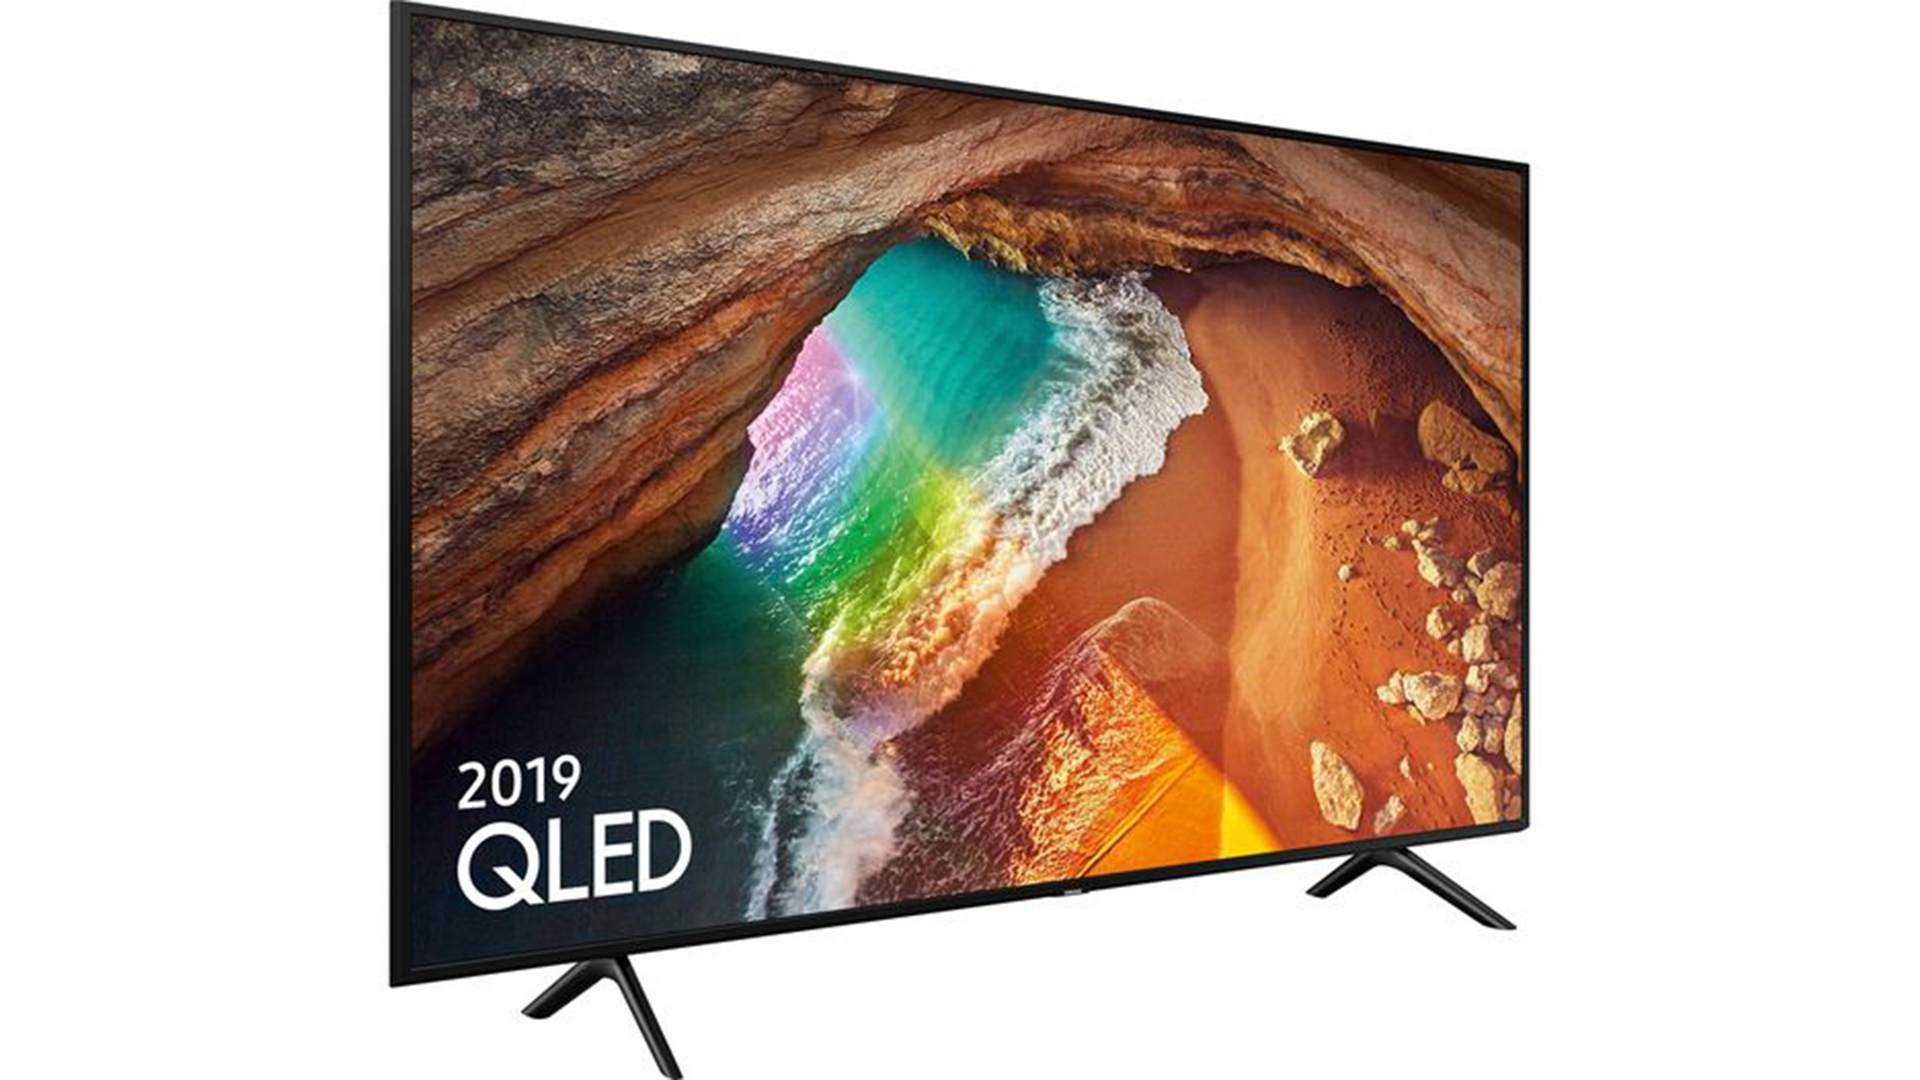 Best TVs 2019: The most eye-popping TVs you can buy this year